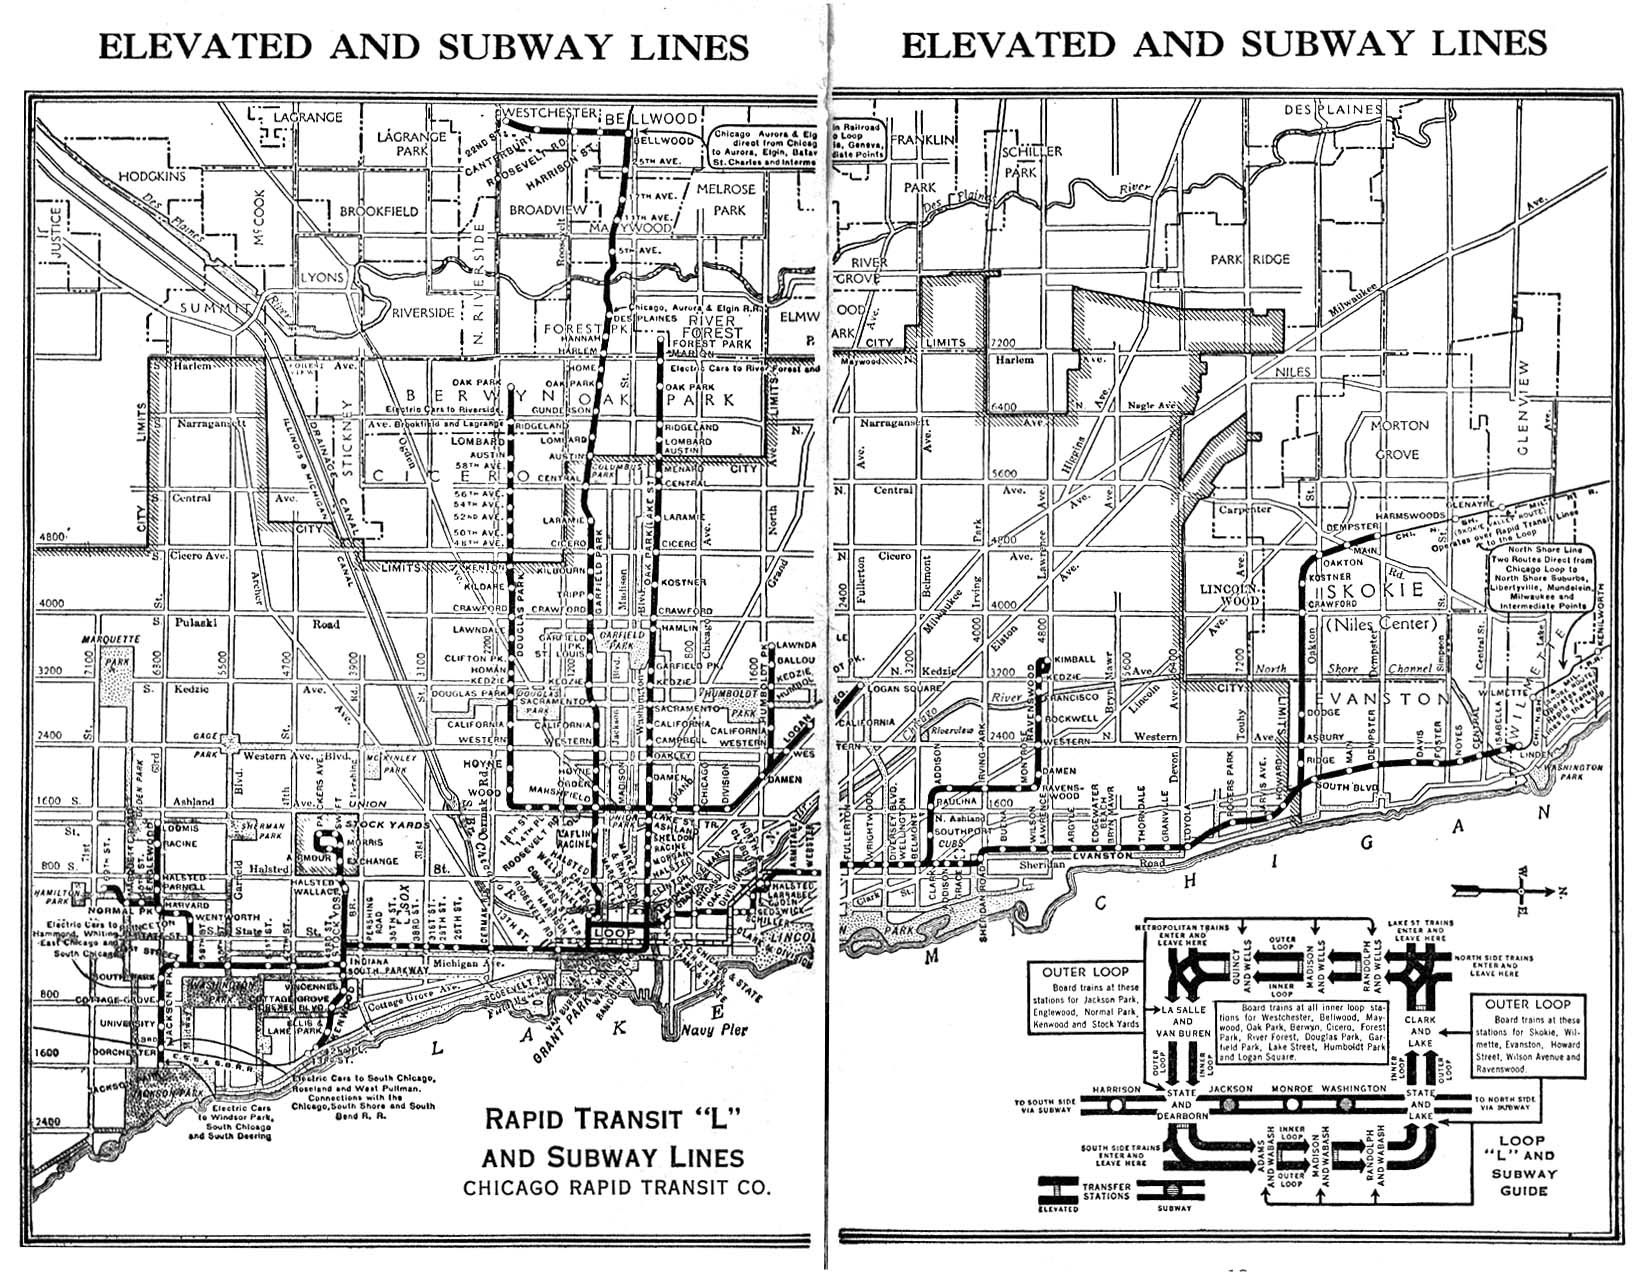 Chicago Lorg System Maps Route Maps - Chicago union map